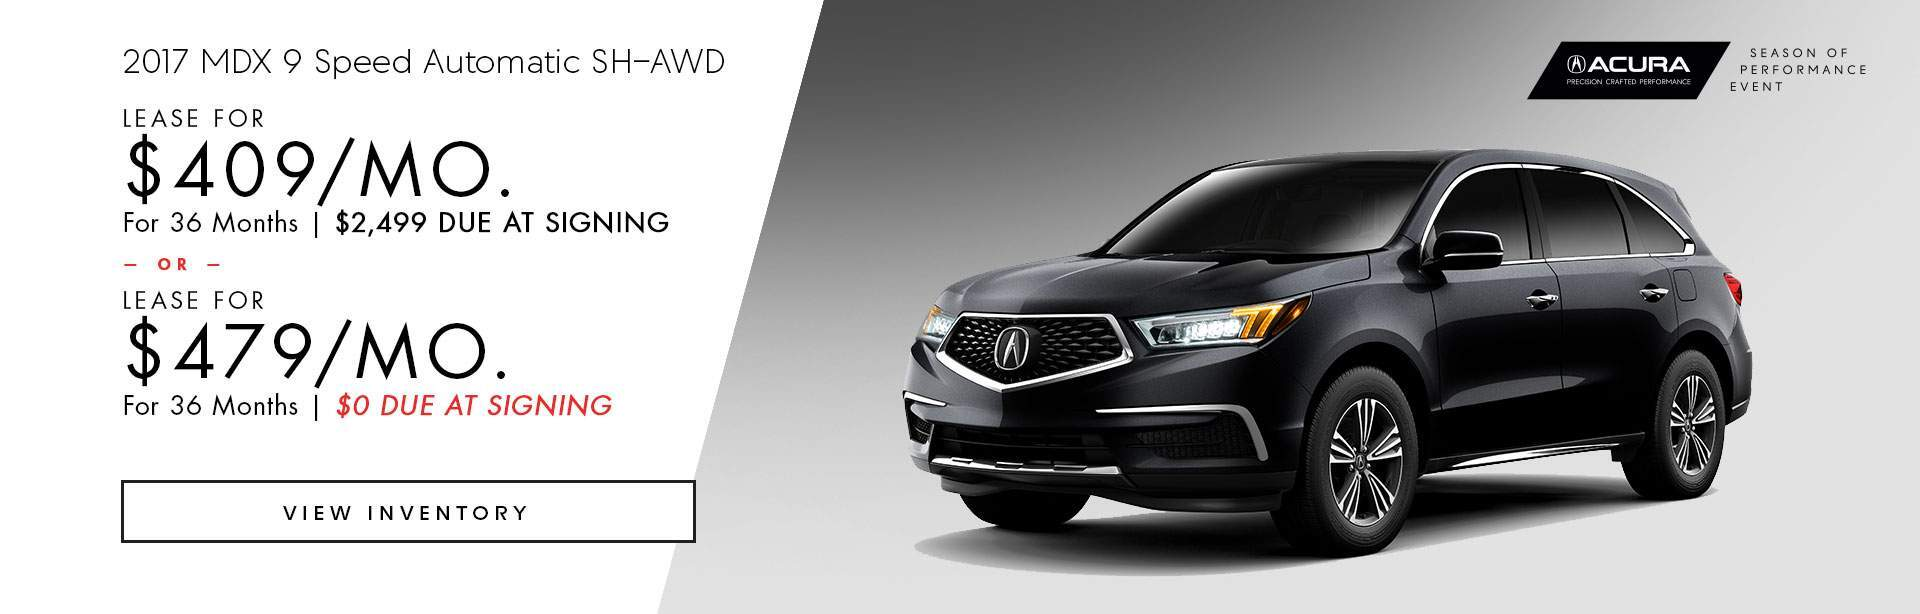 2017 Acura MDX 9 Speed Automatic SH-AWD